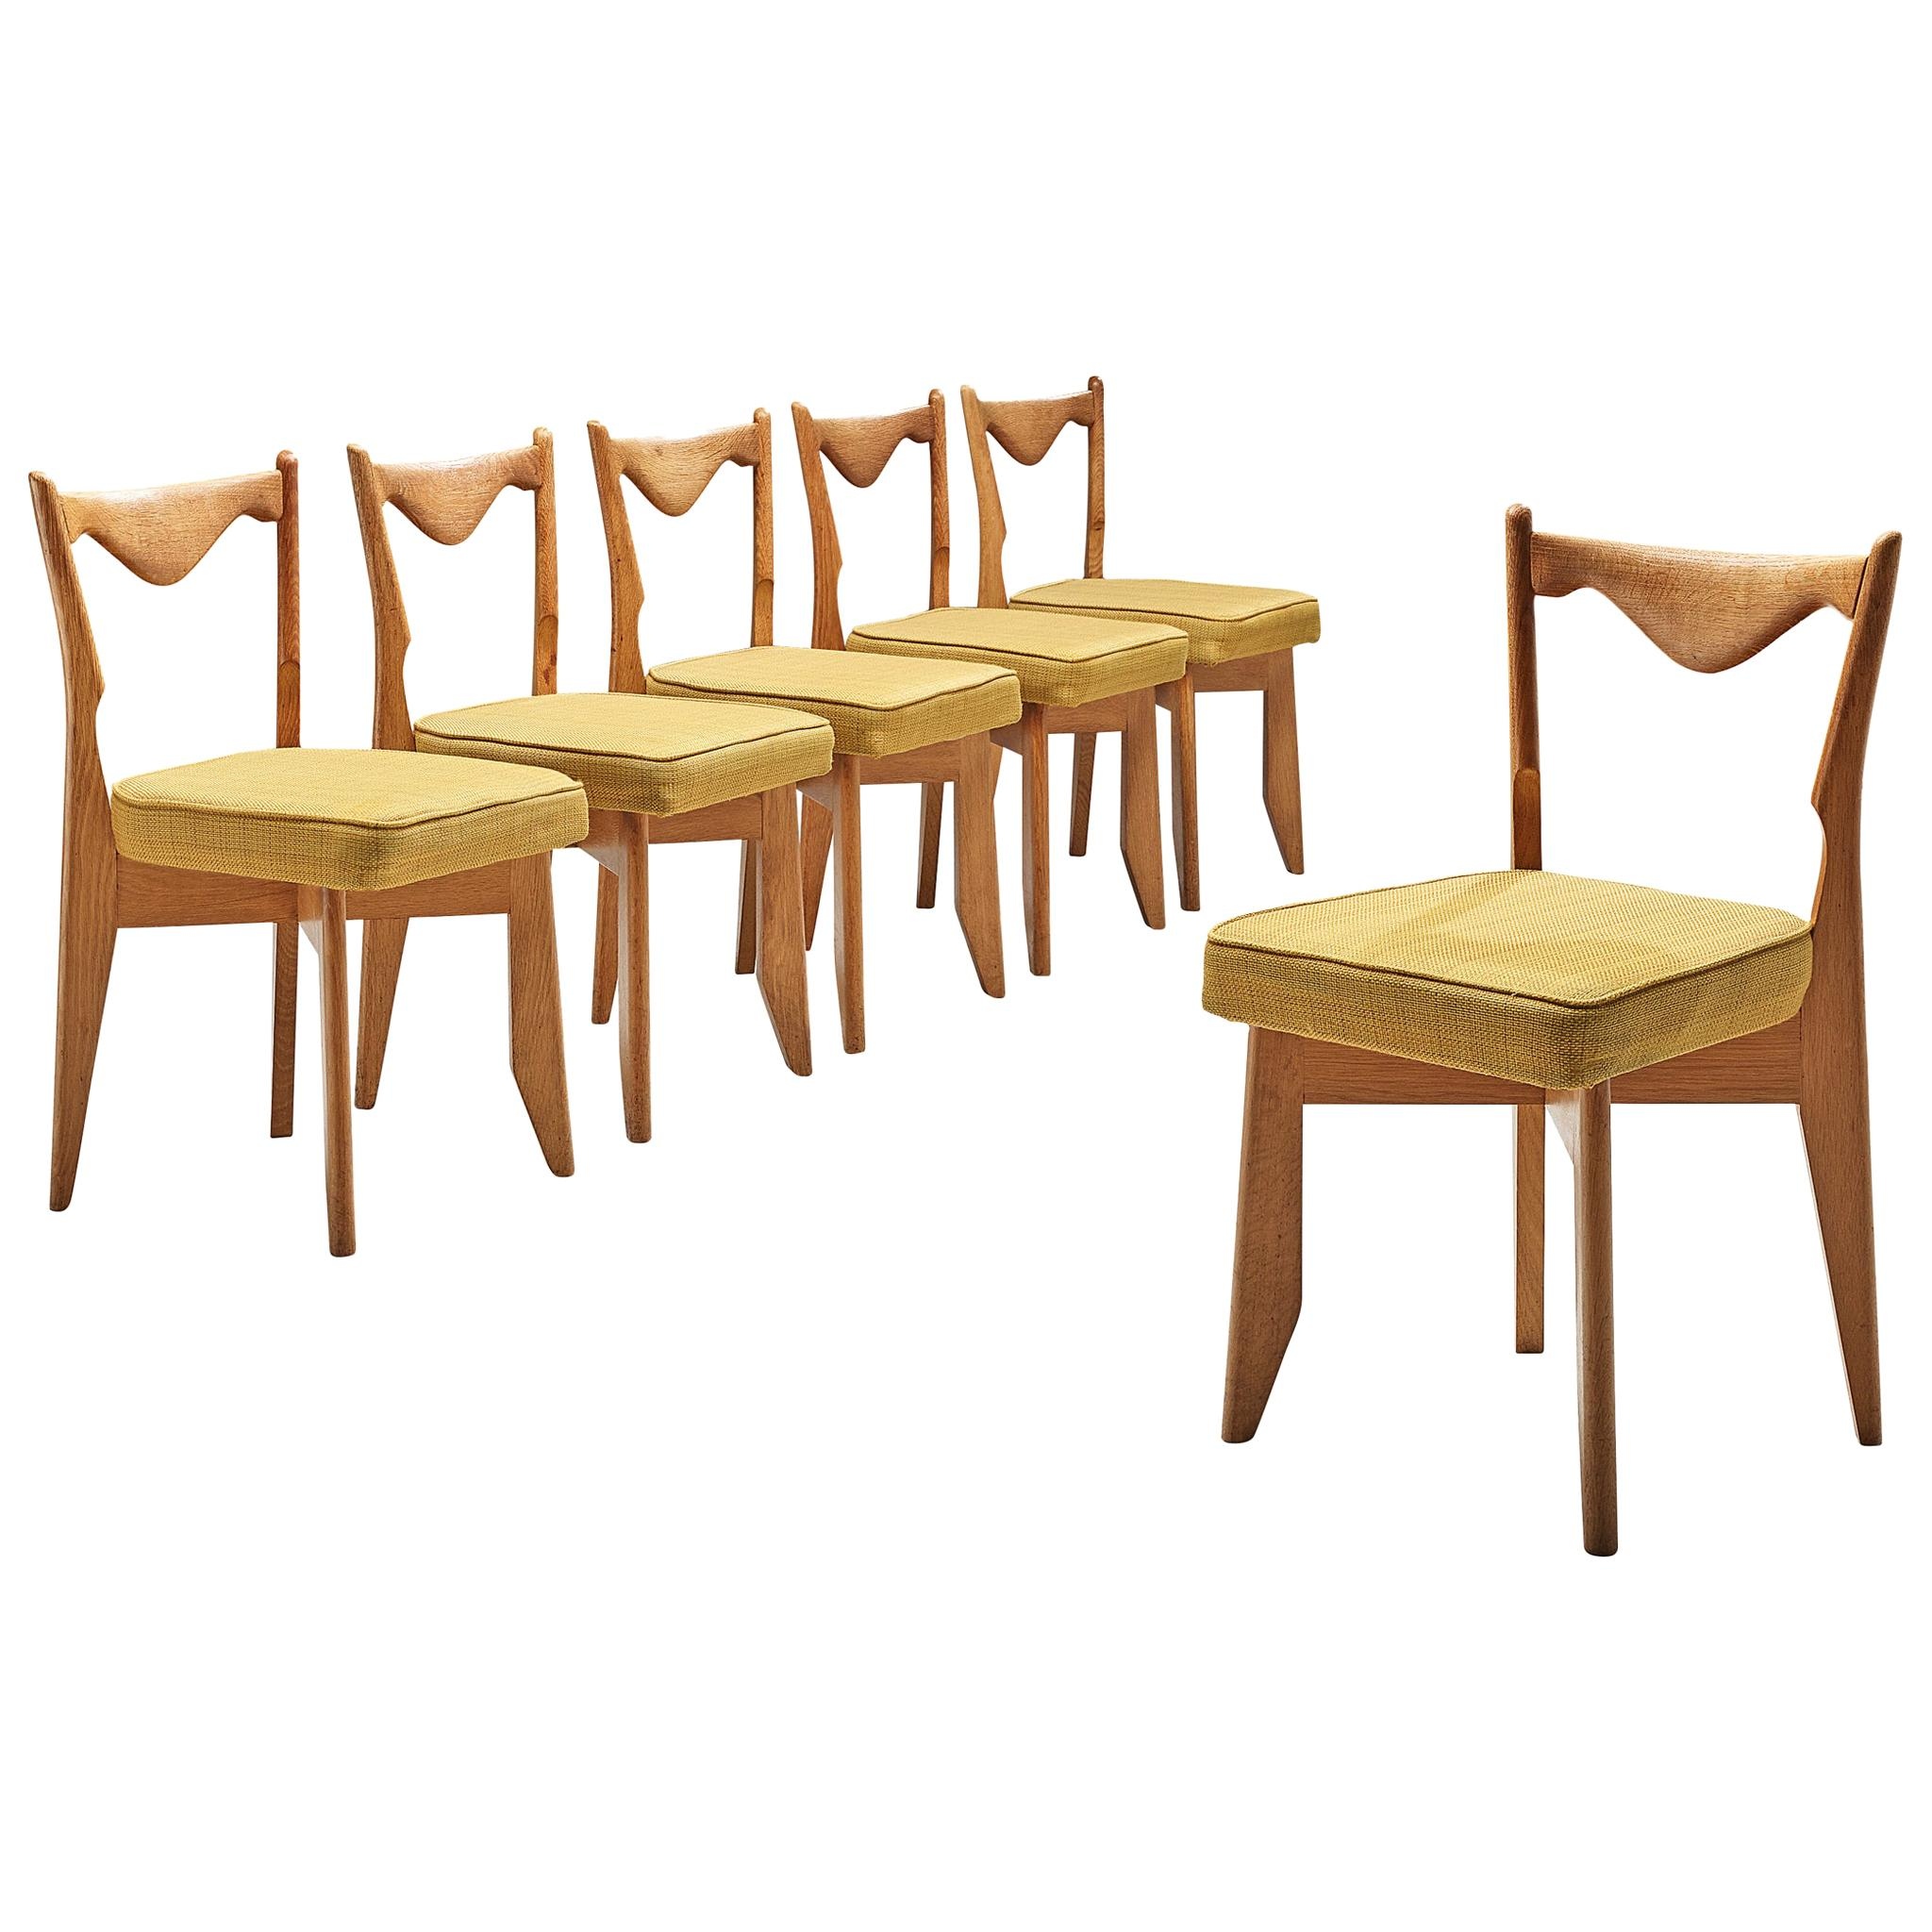 Guillerme et Chambron Set of Dining Chairs in Solid Oak